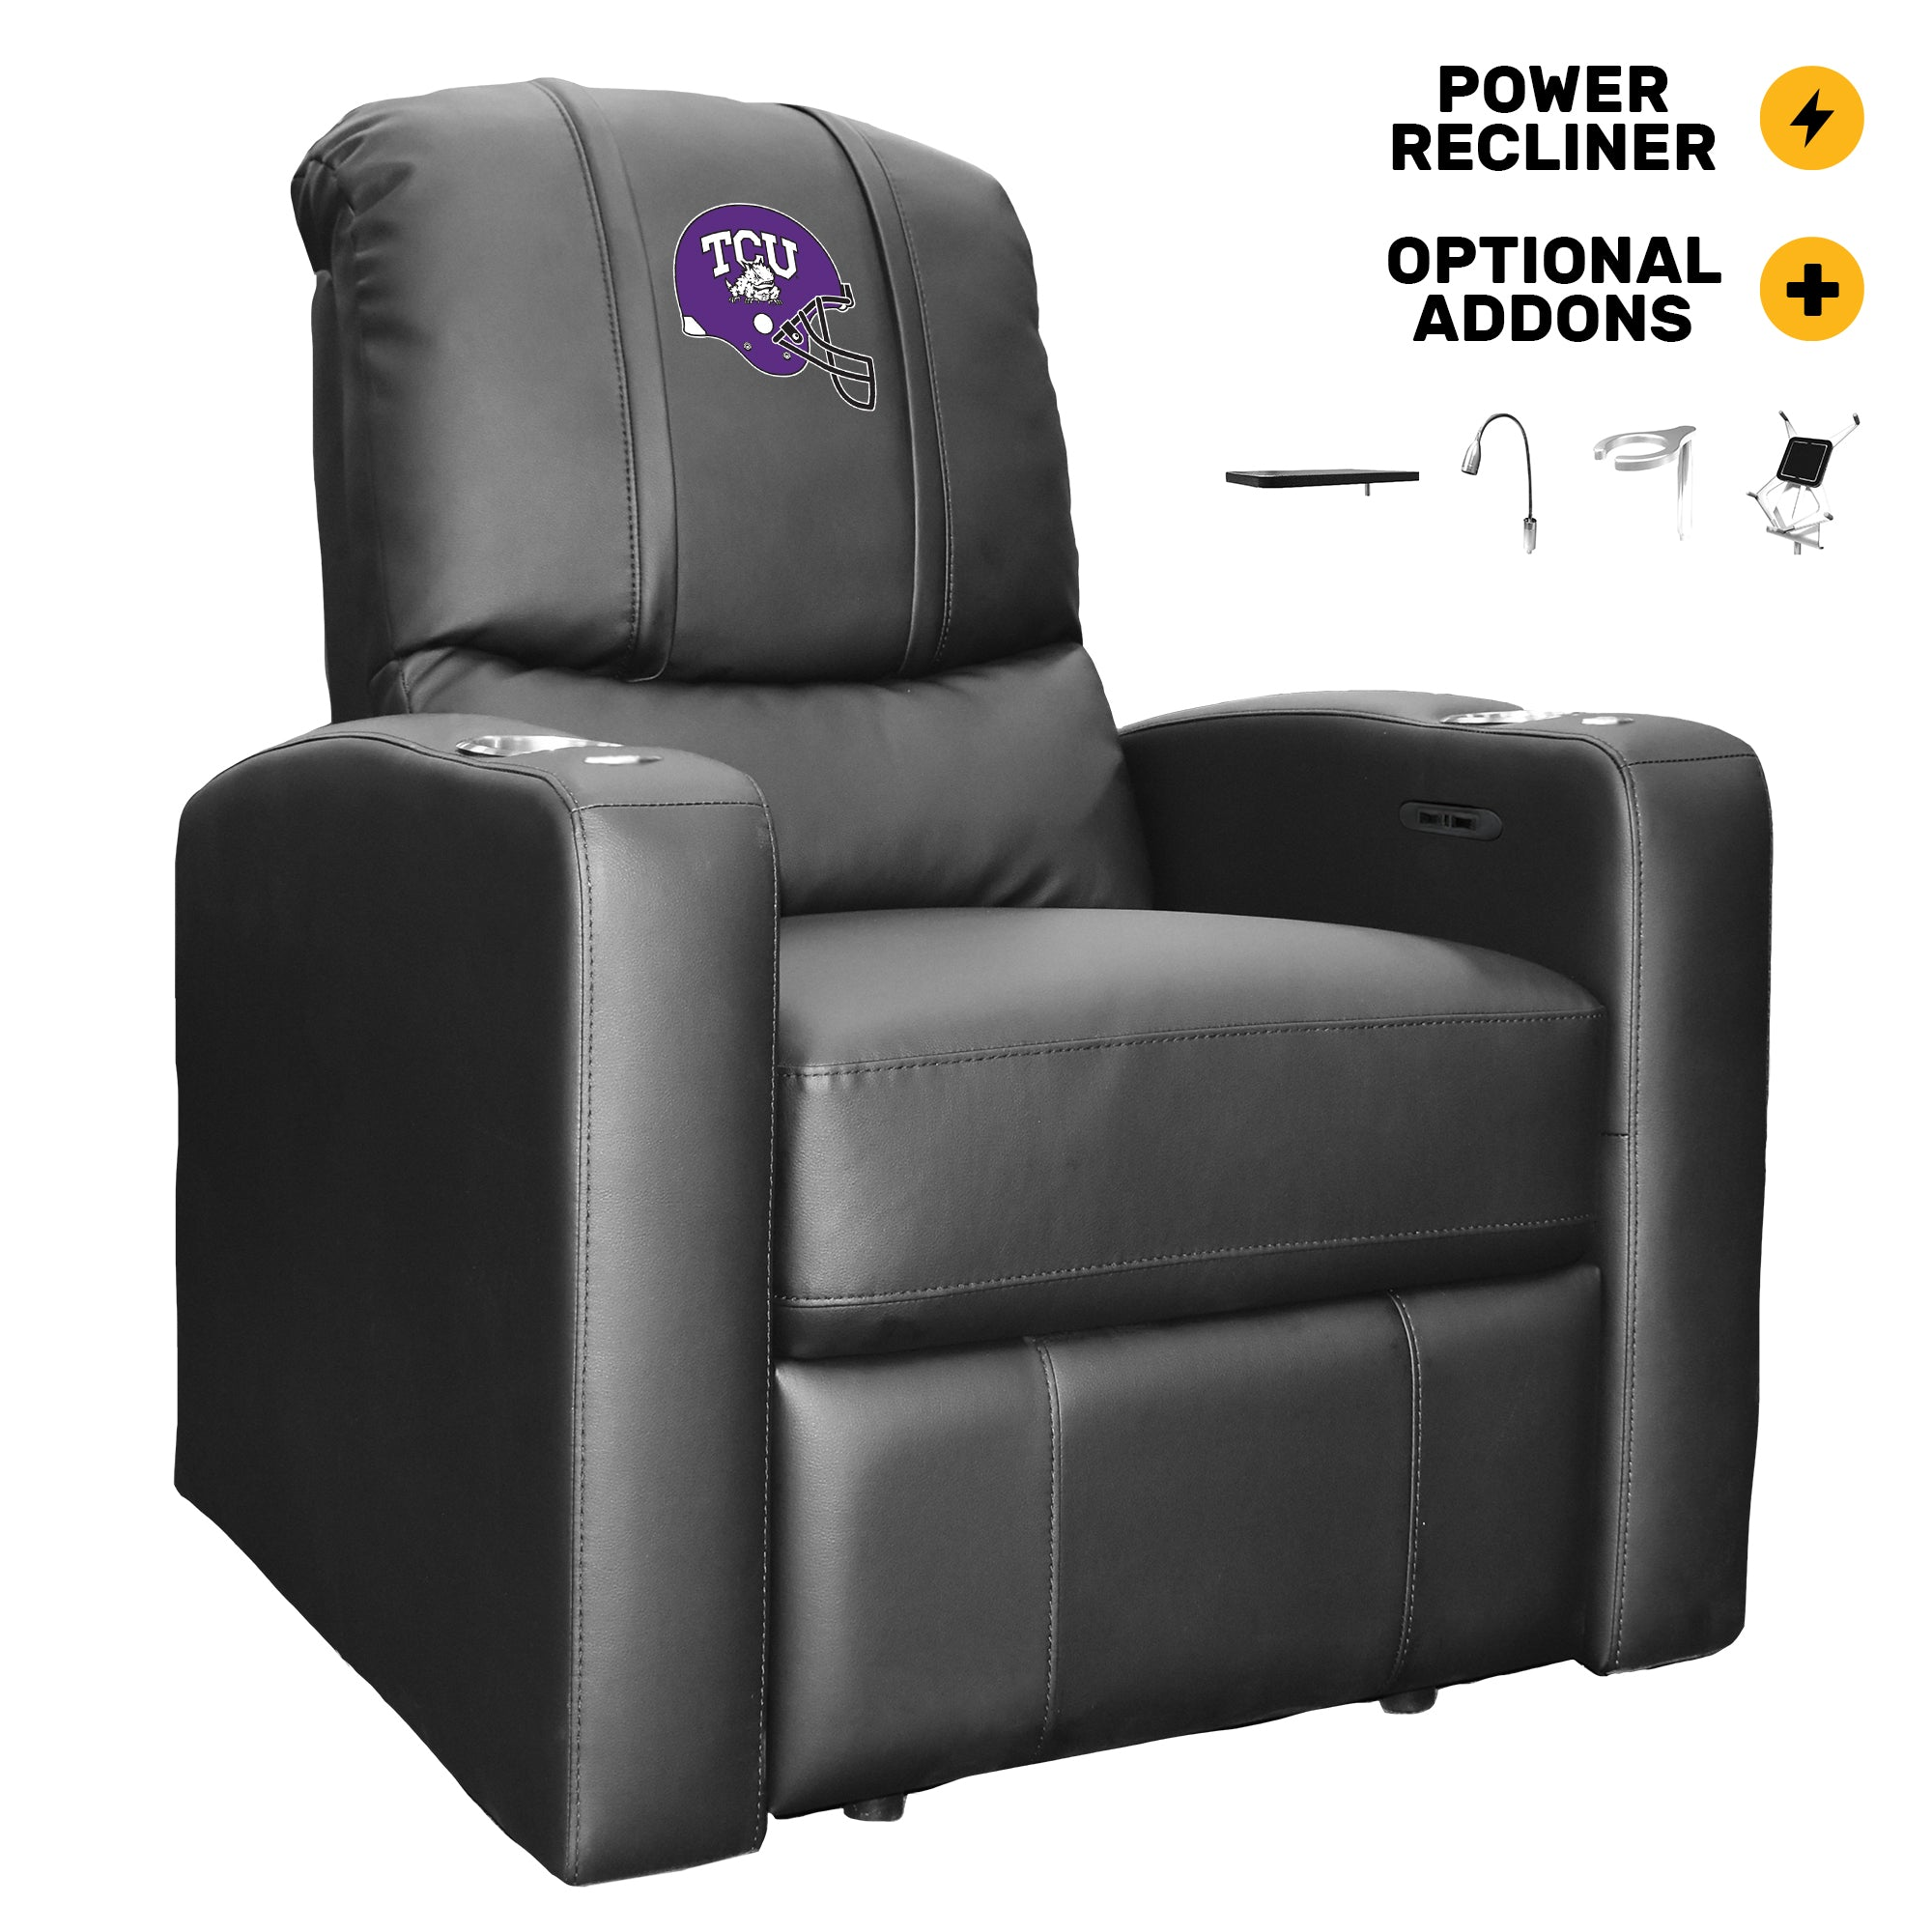 Stealth Power Recliner with TCU Horned Frogs Alternate